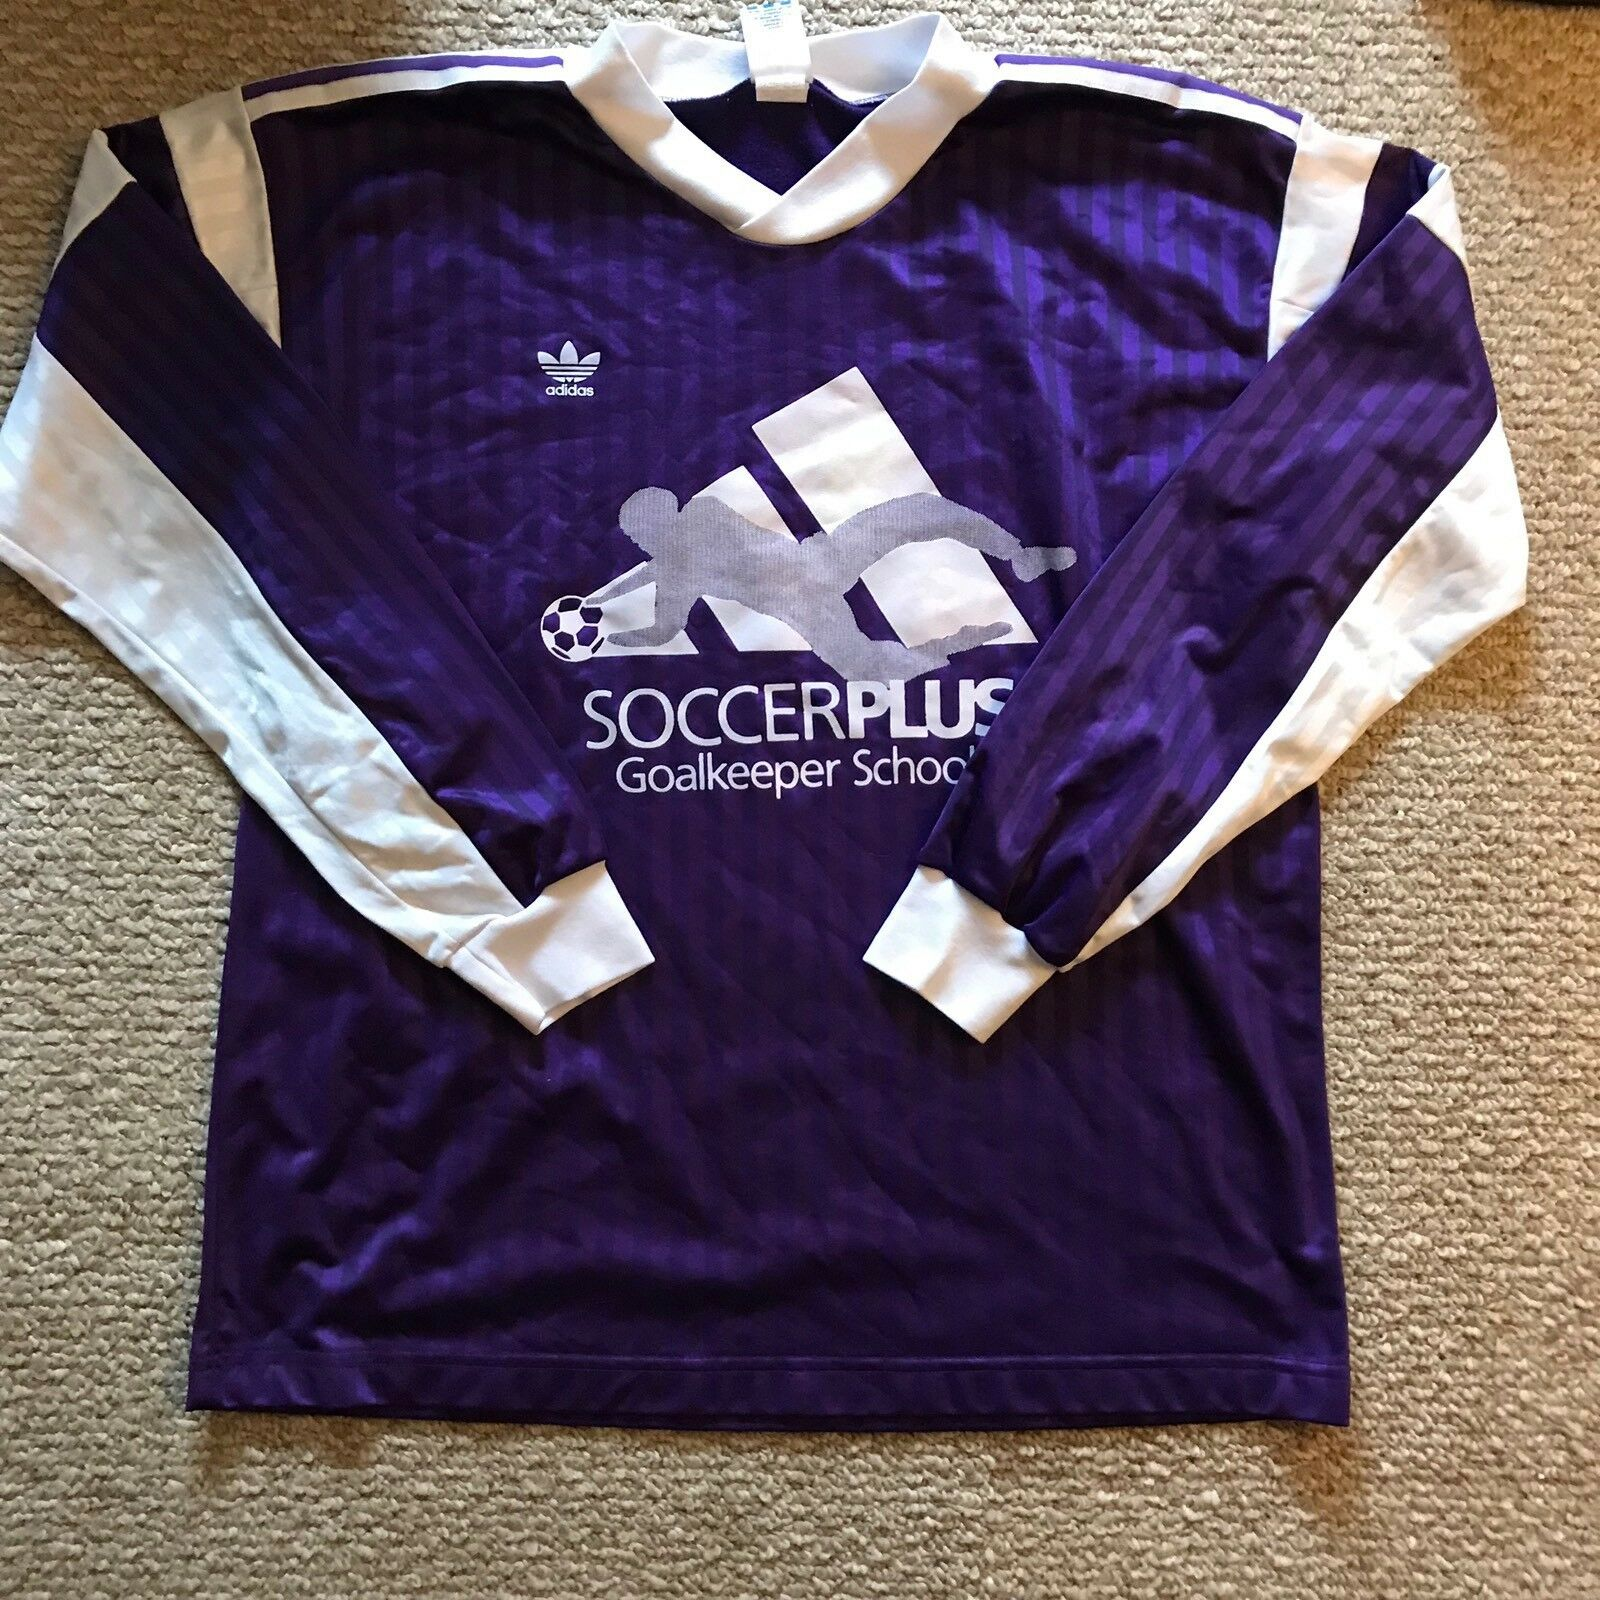 Super Rare Vintage 1980s Adidas Soccerplus Goalkeeper Jersey Size XL New Mens